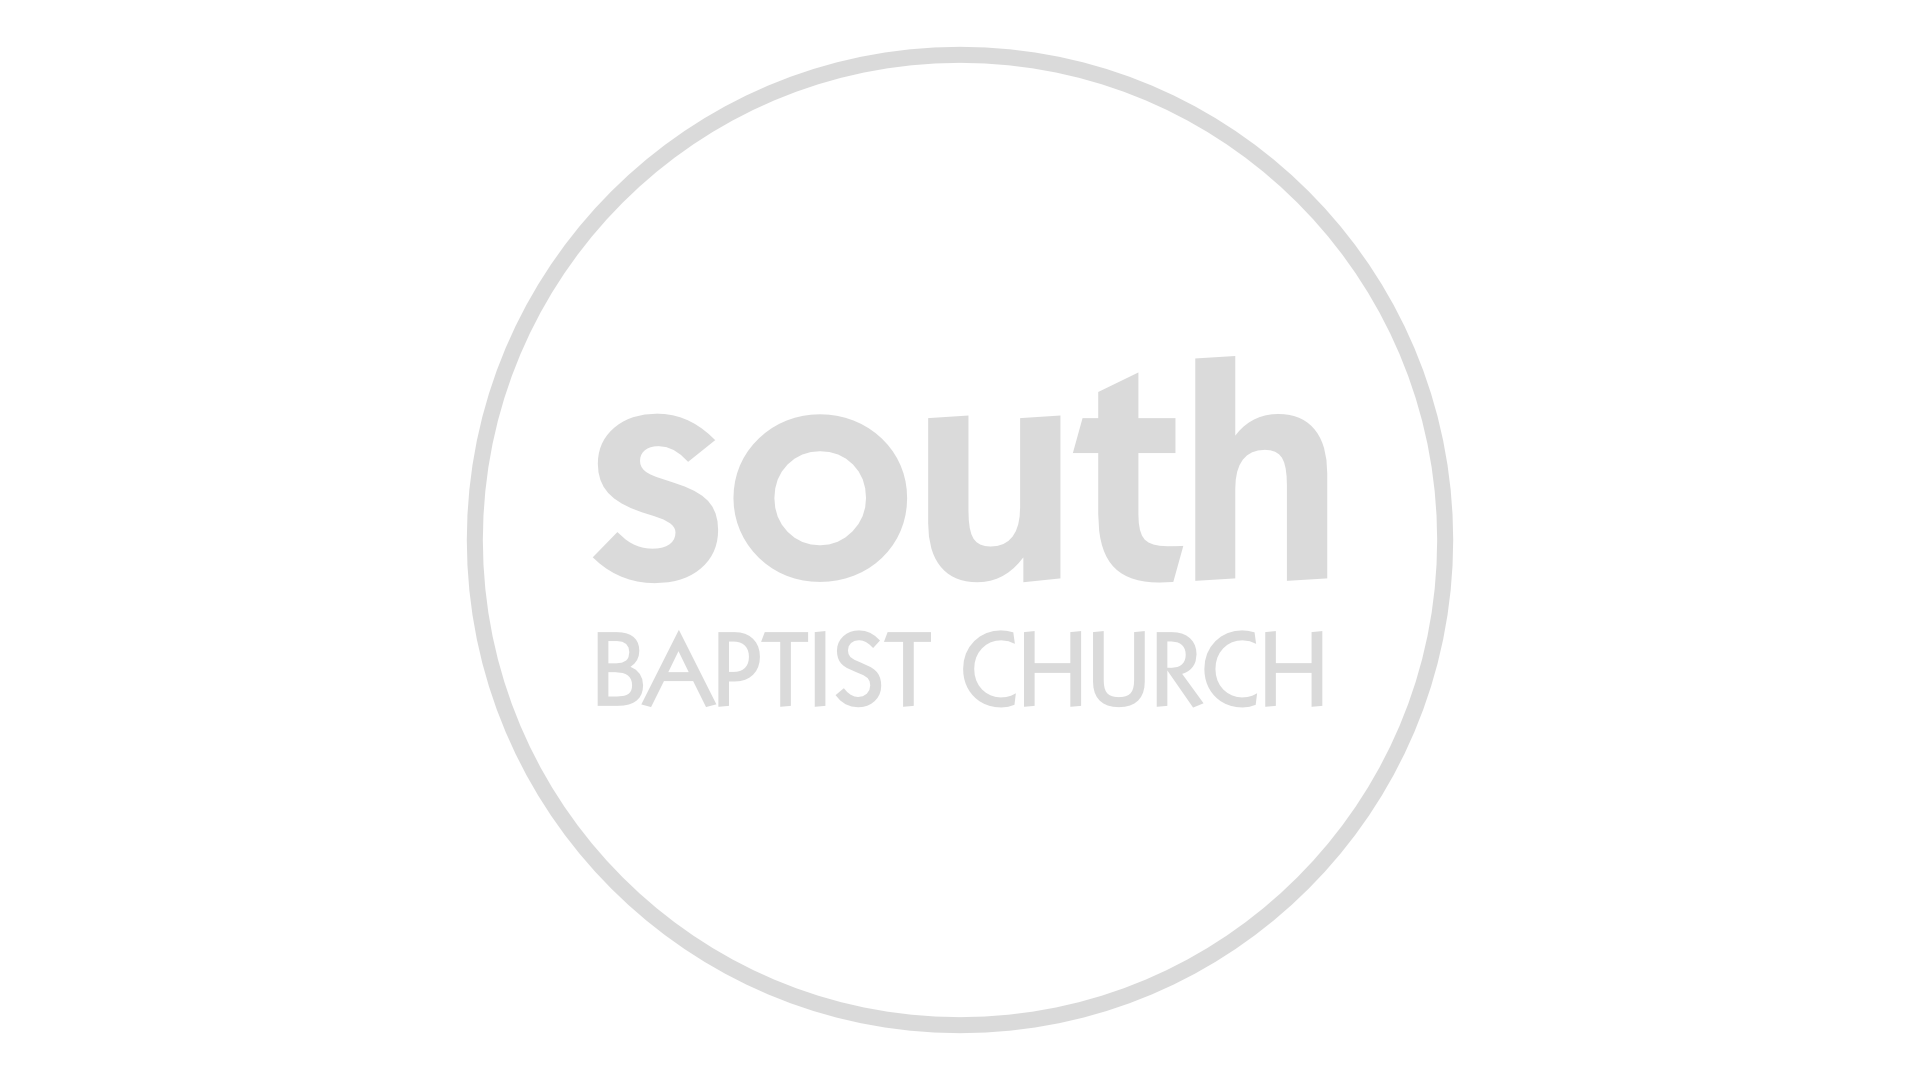 South Baptist Church - Flint, Michigan